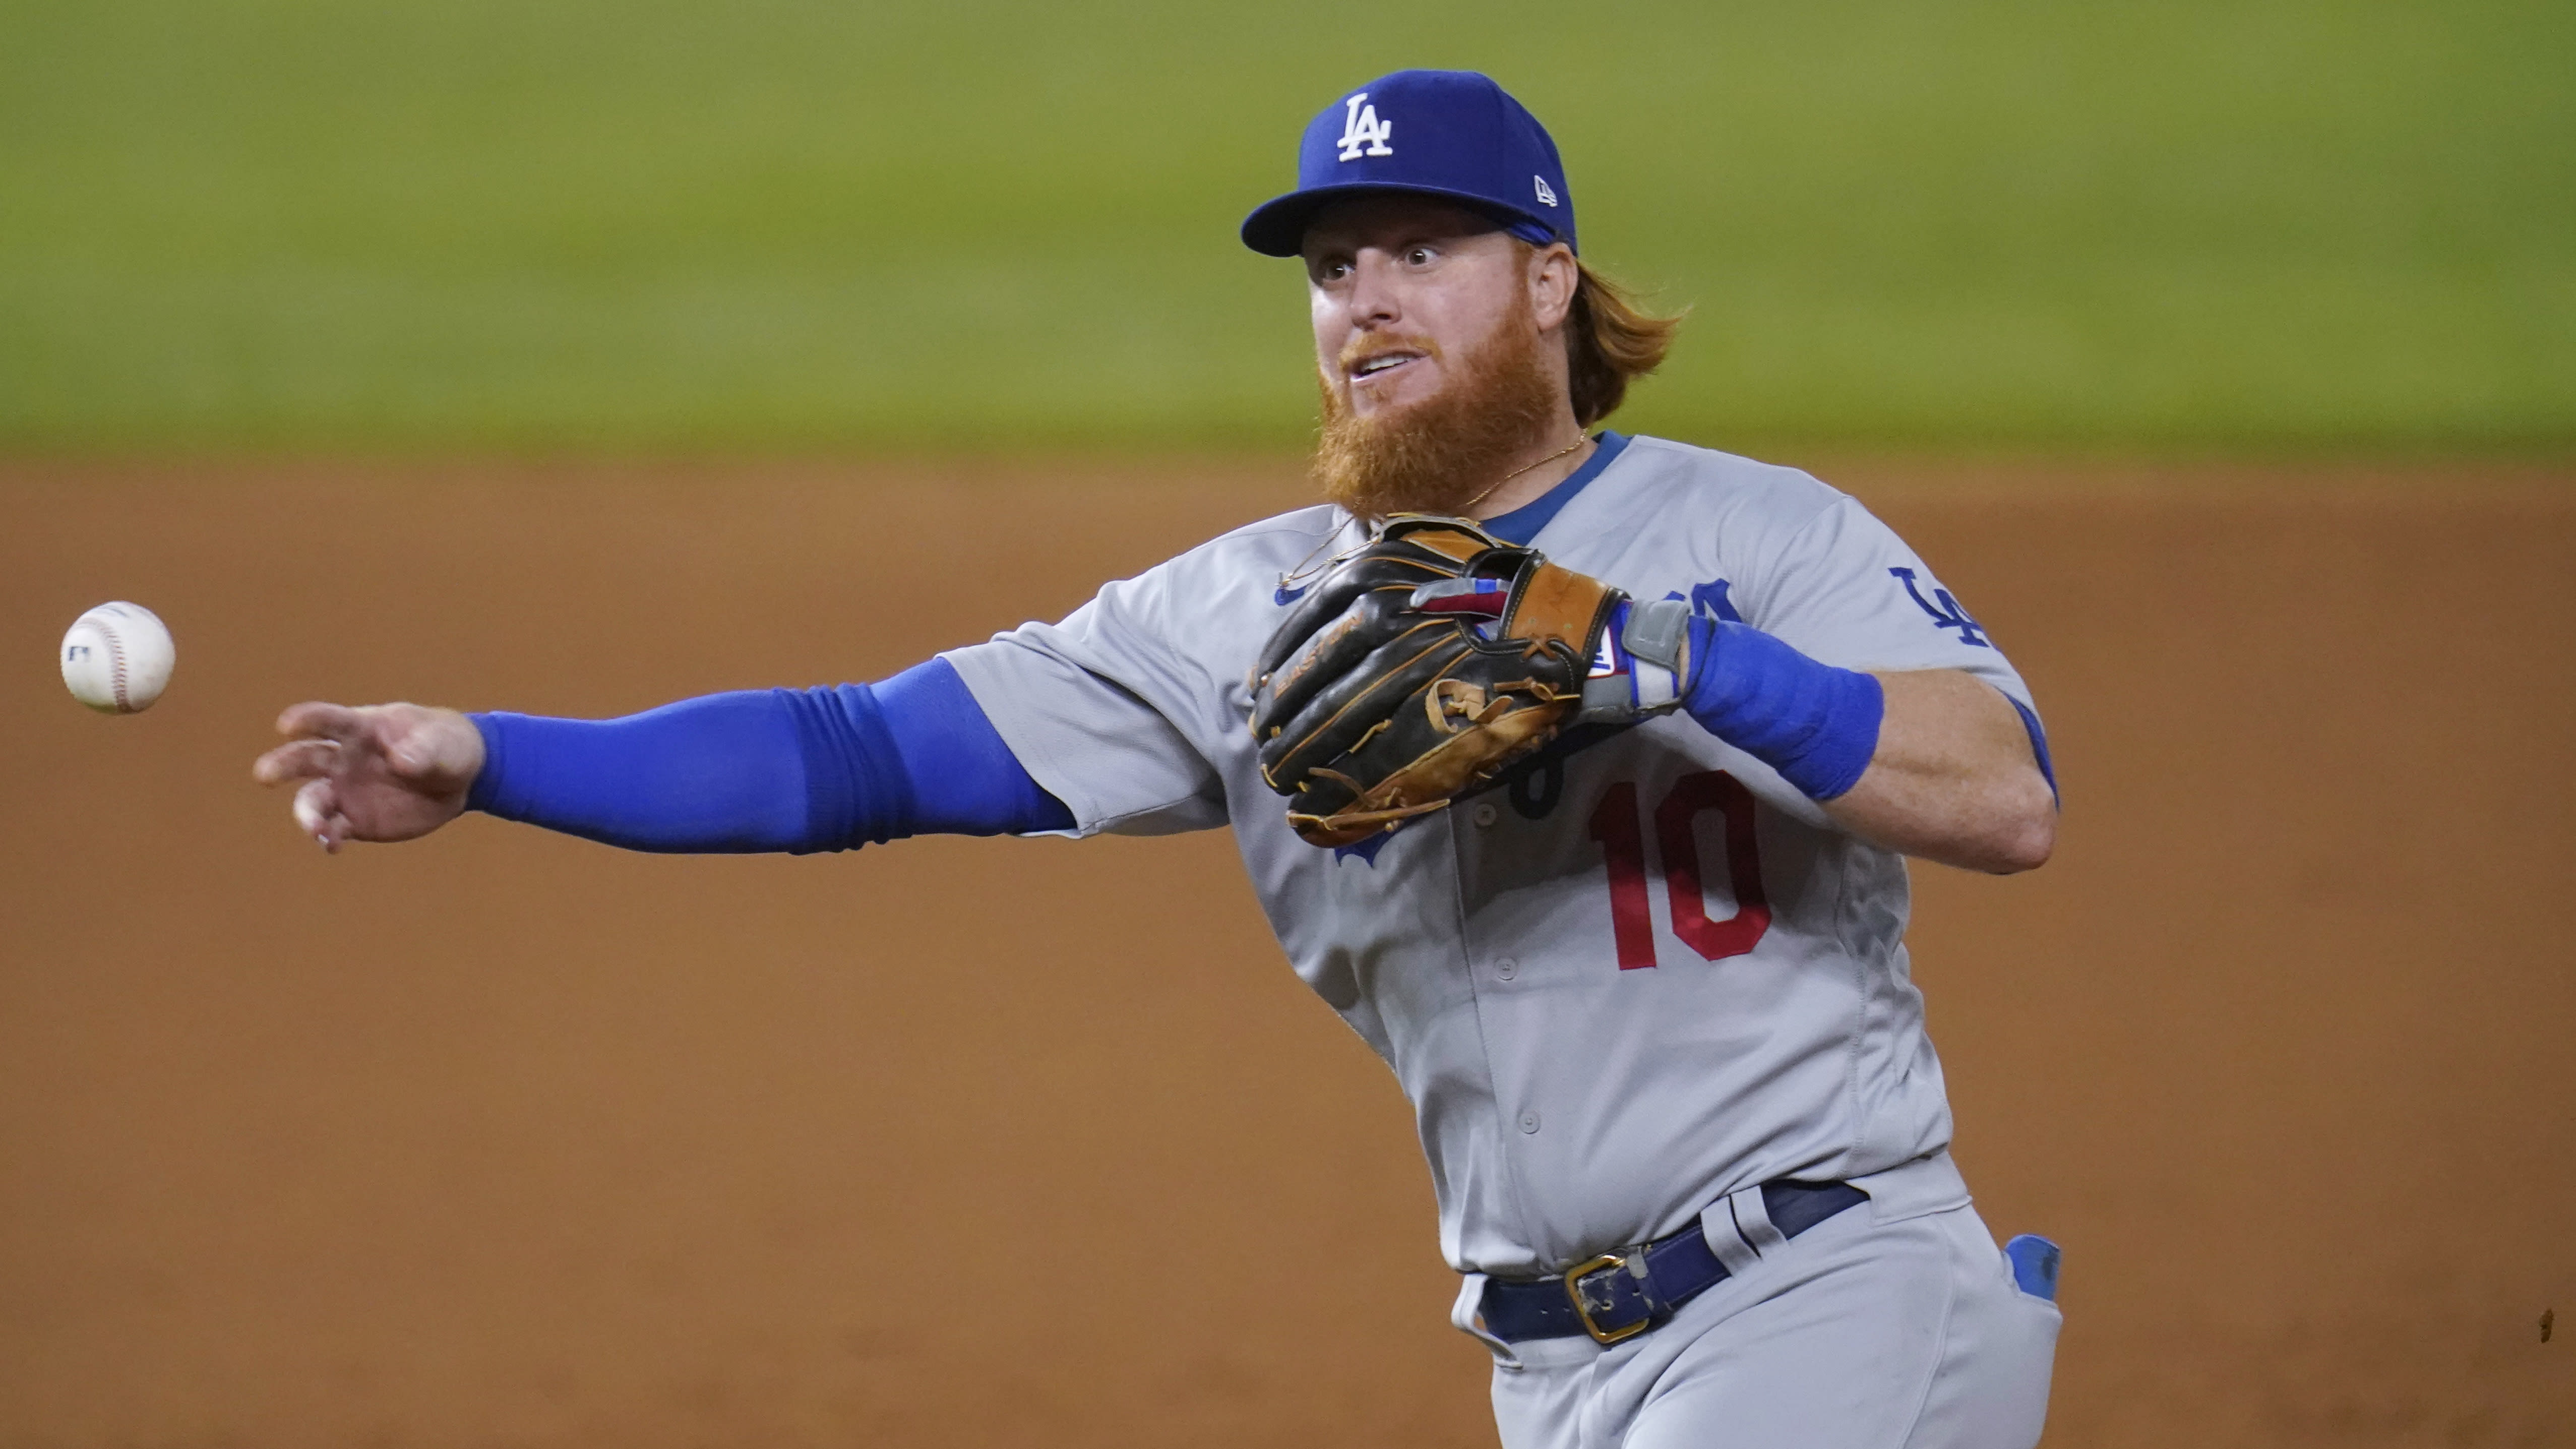 Los Angeles Dodgers' Justin Turner fields a ground out by San Diego Padres Eric Hosmer during the eighth inning in Game 3 of a baseball National League Division Series Thursday, Oct. 8, 2020, in Arlington, Texas. (AP Photo/Sue Ogrocki)